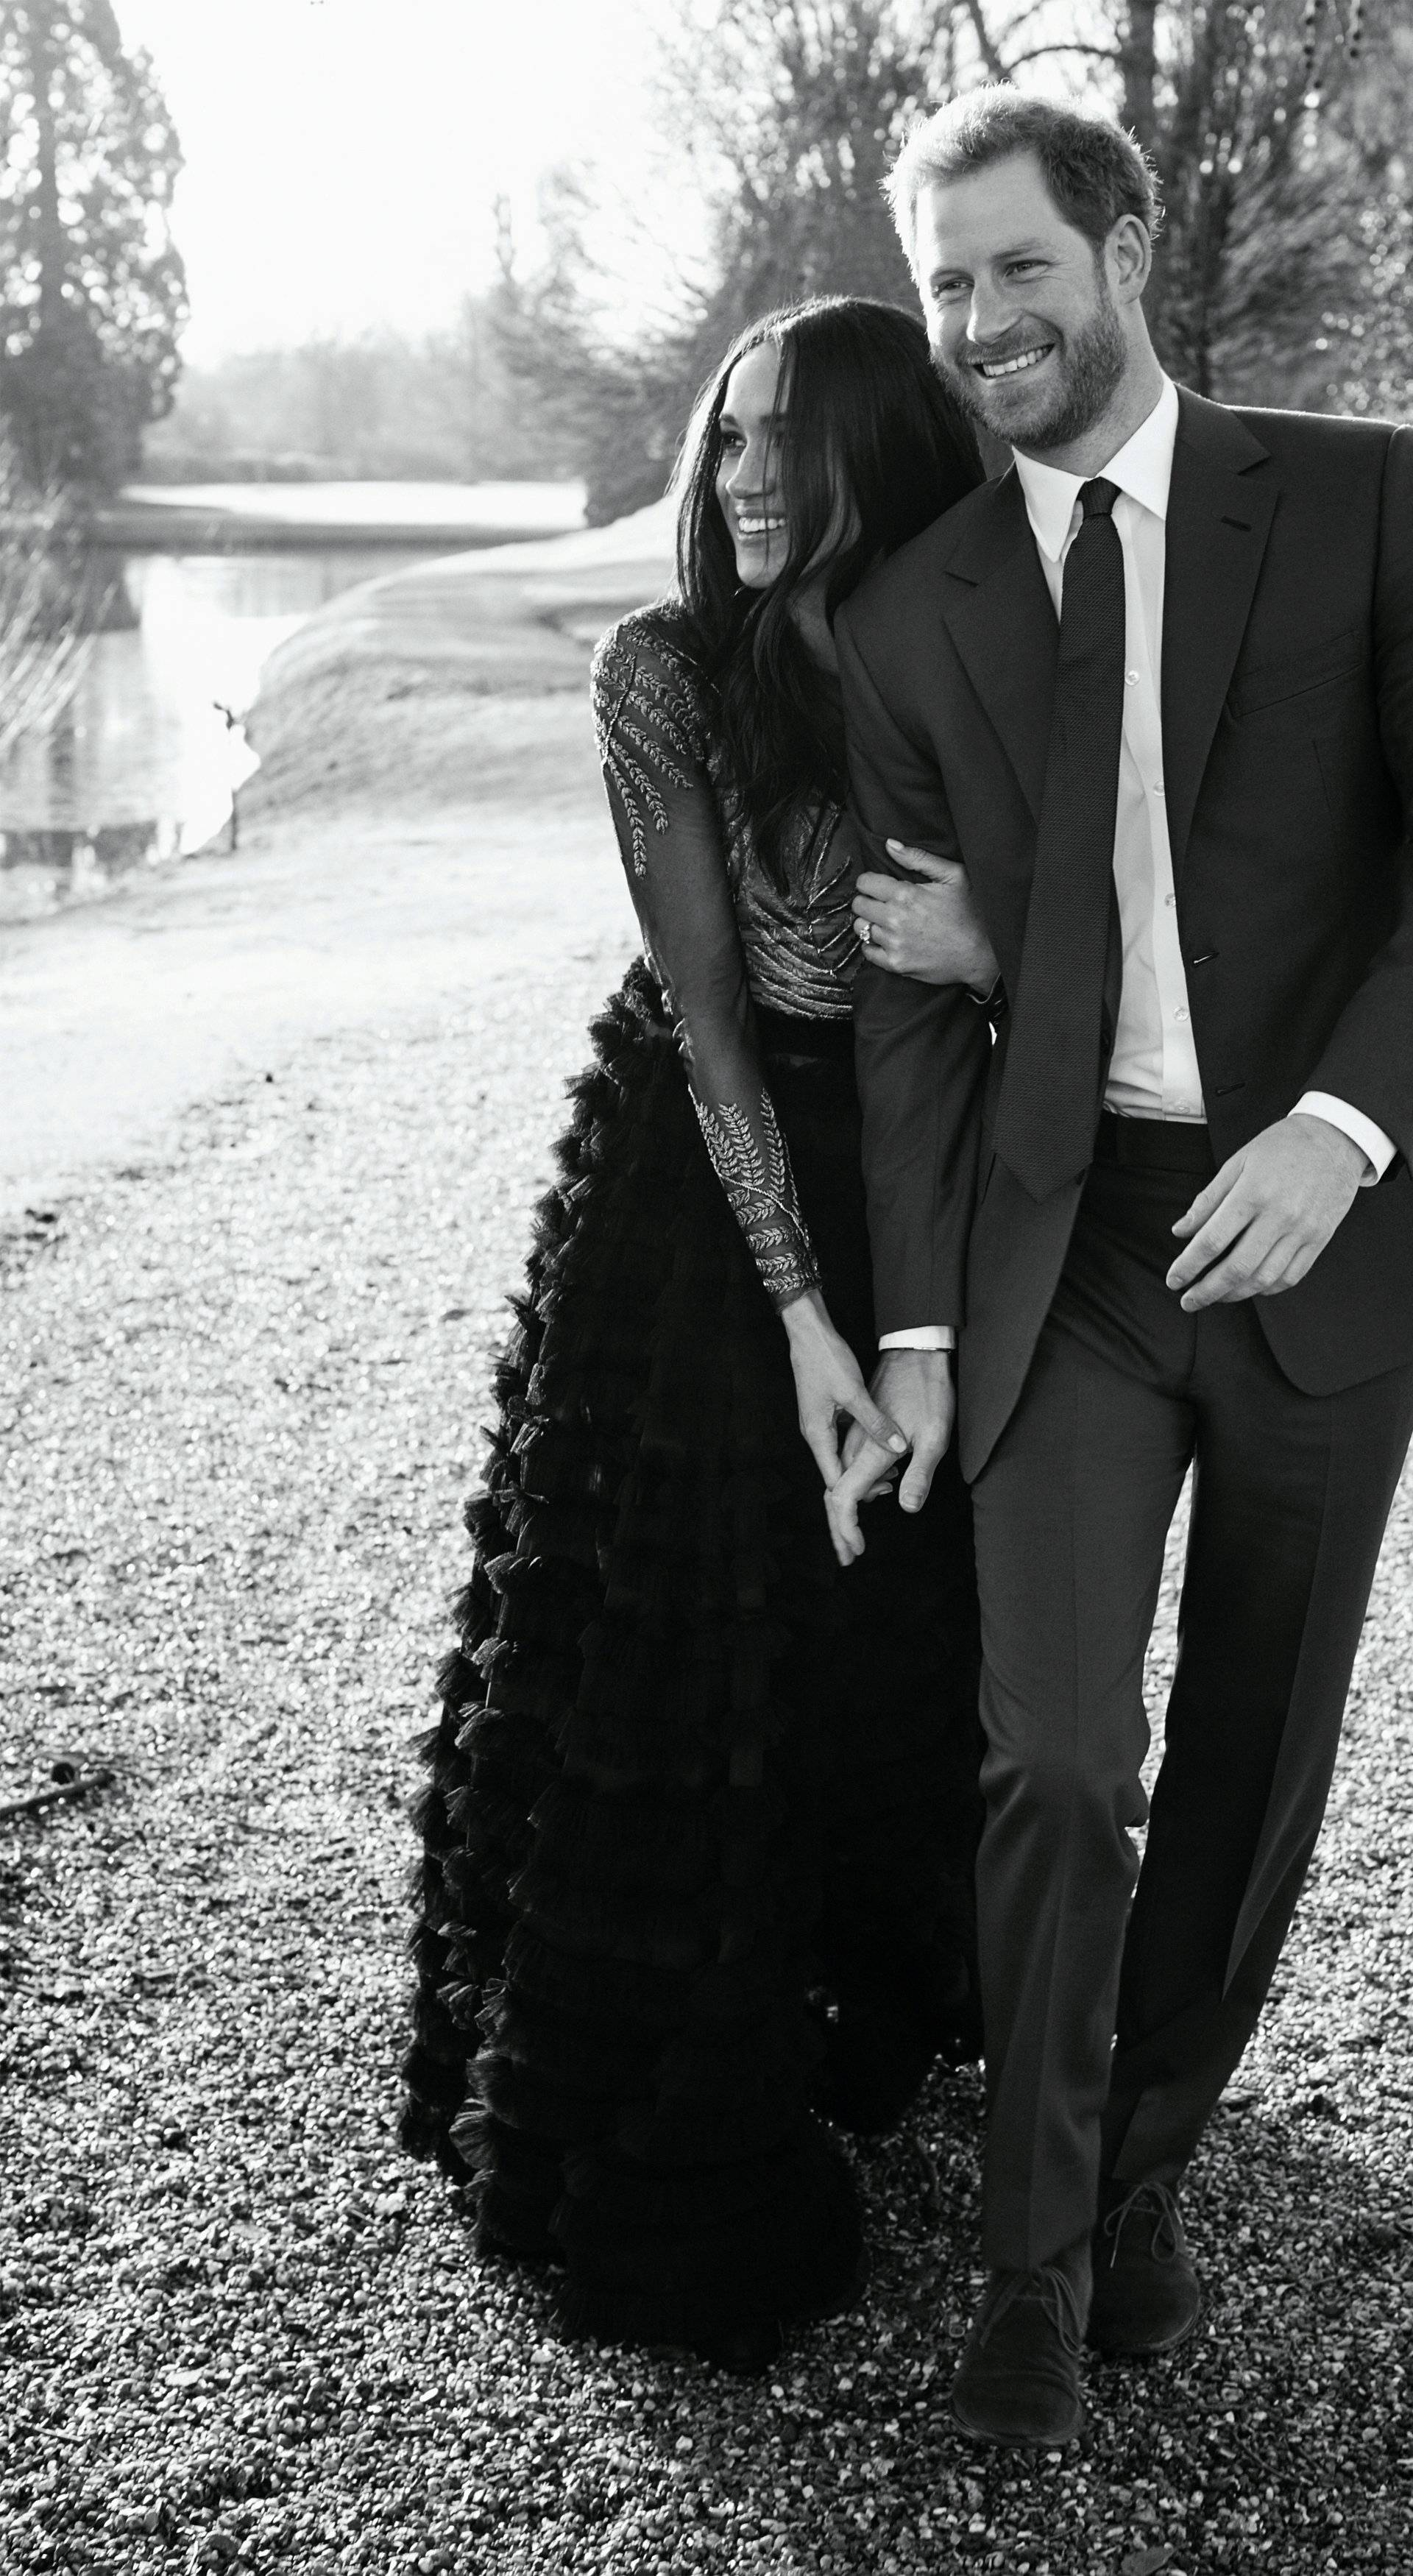 FILE PHOTO: An official engagement photo released by Kensington Palace of Prince Harry and Meghan Markle taken by photographer Alexi Lubomirski, at Frogmore House in Windsor